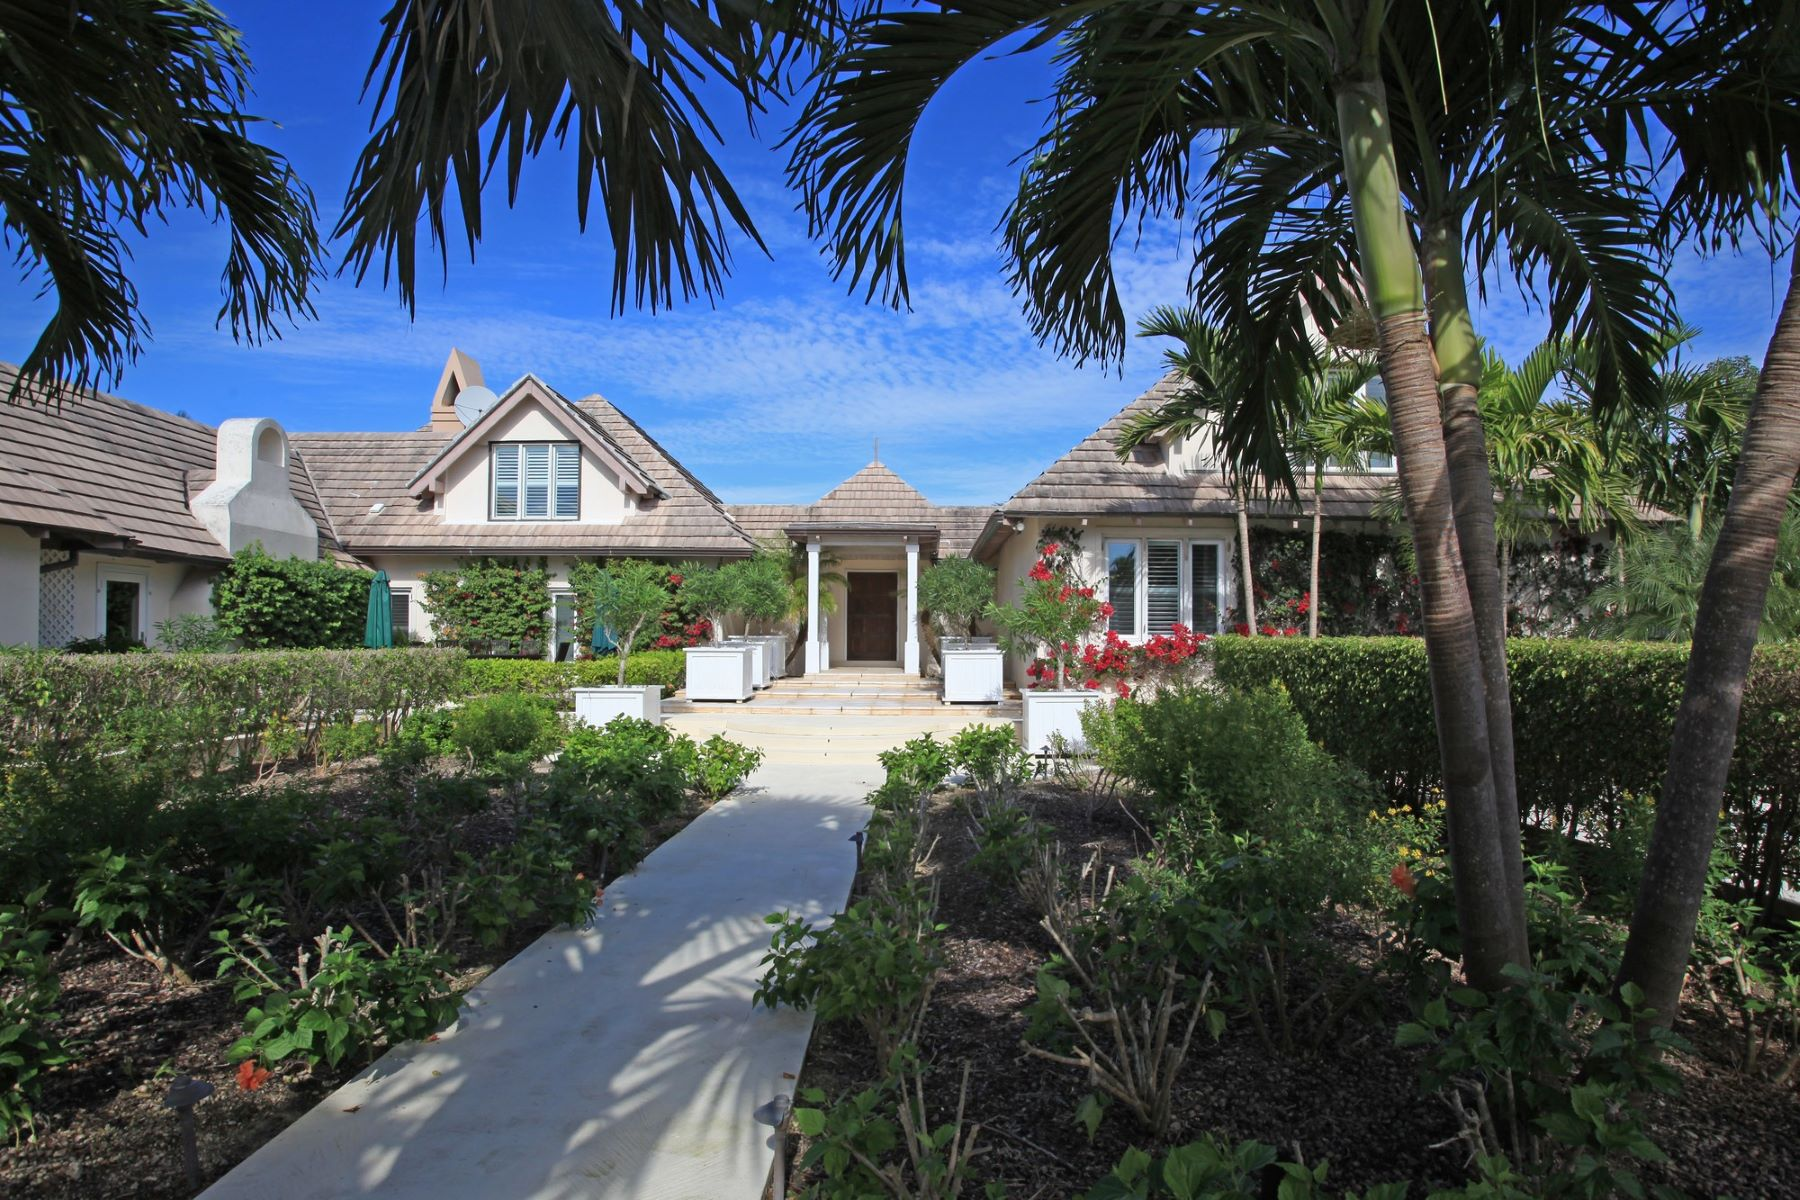 Vacation Rentals for Rent at Lagoon Beach House Other Bahamas, Other Areas In The Bahamas Bahamas